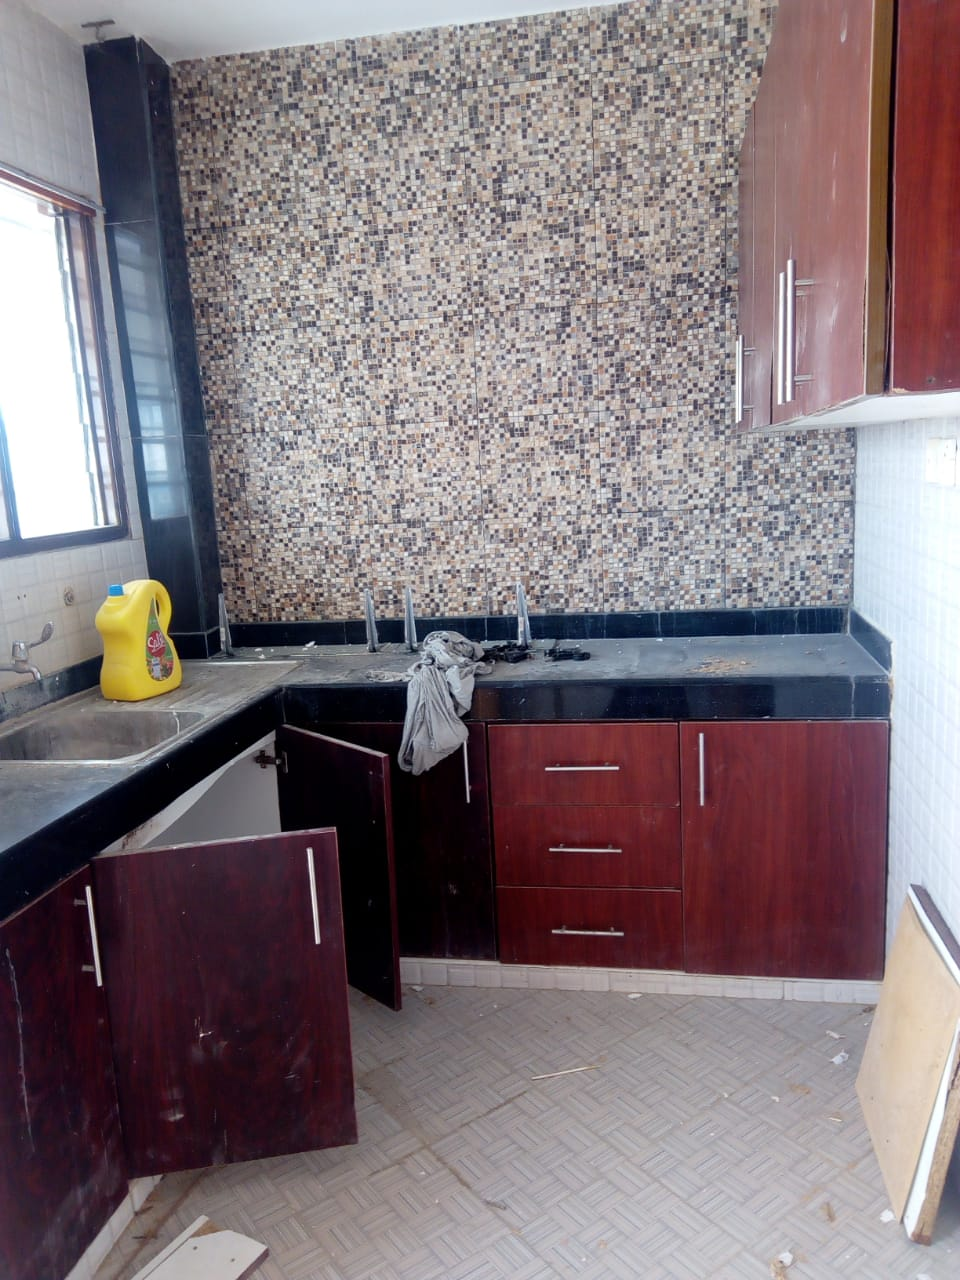 2 bedroom apartment for rent around mombasa town CBD.